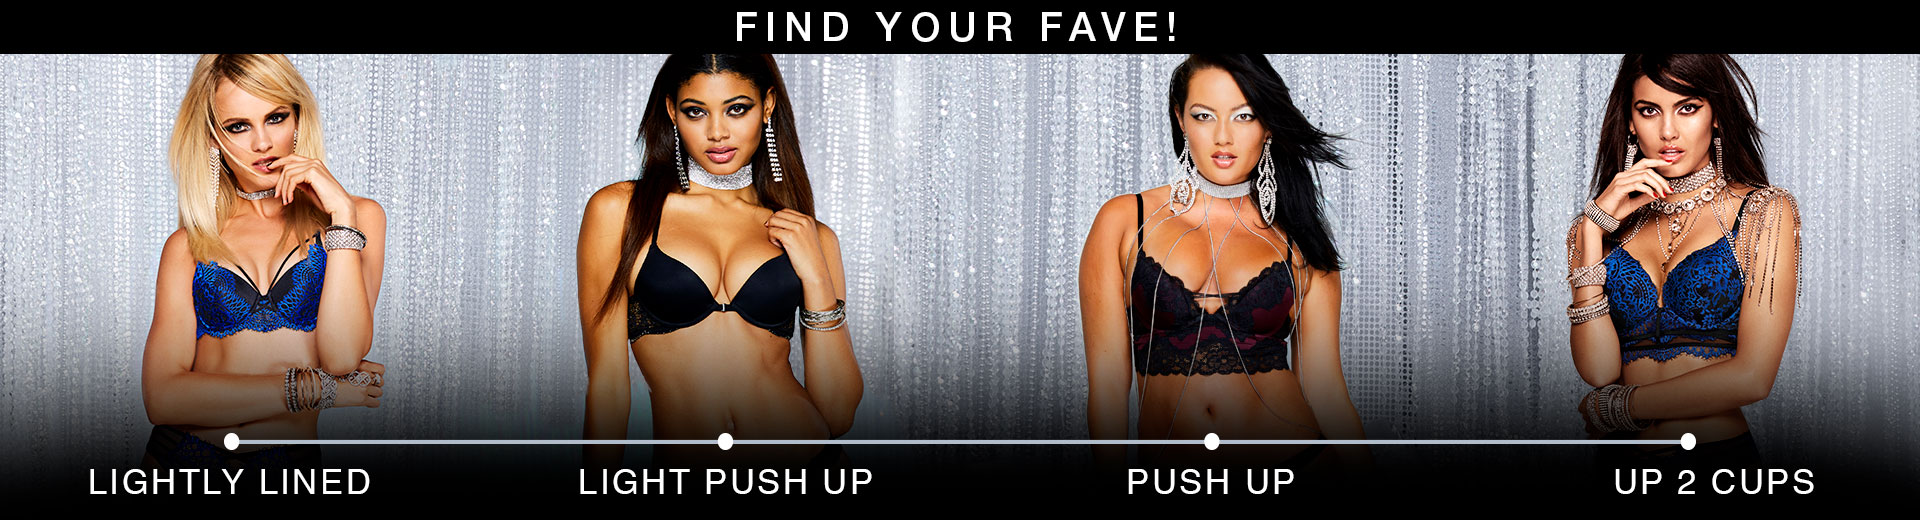 Find your fave!